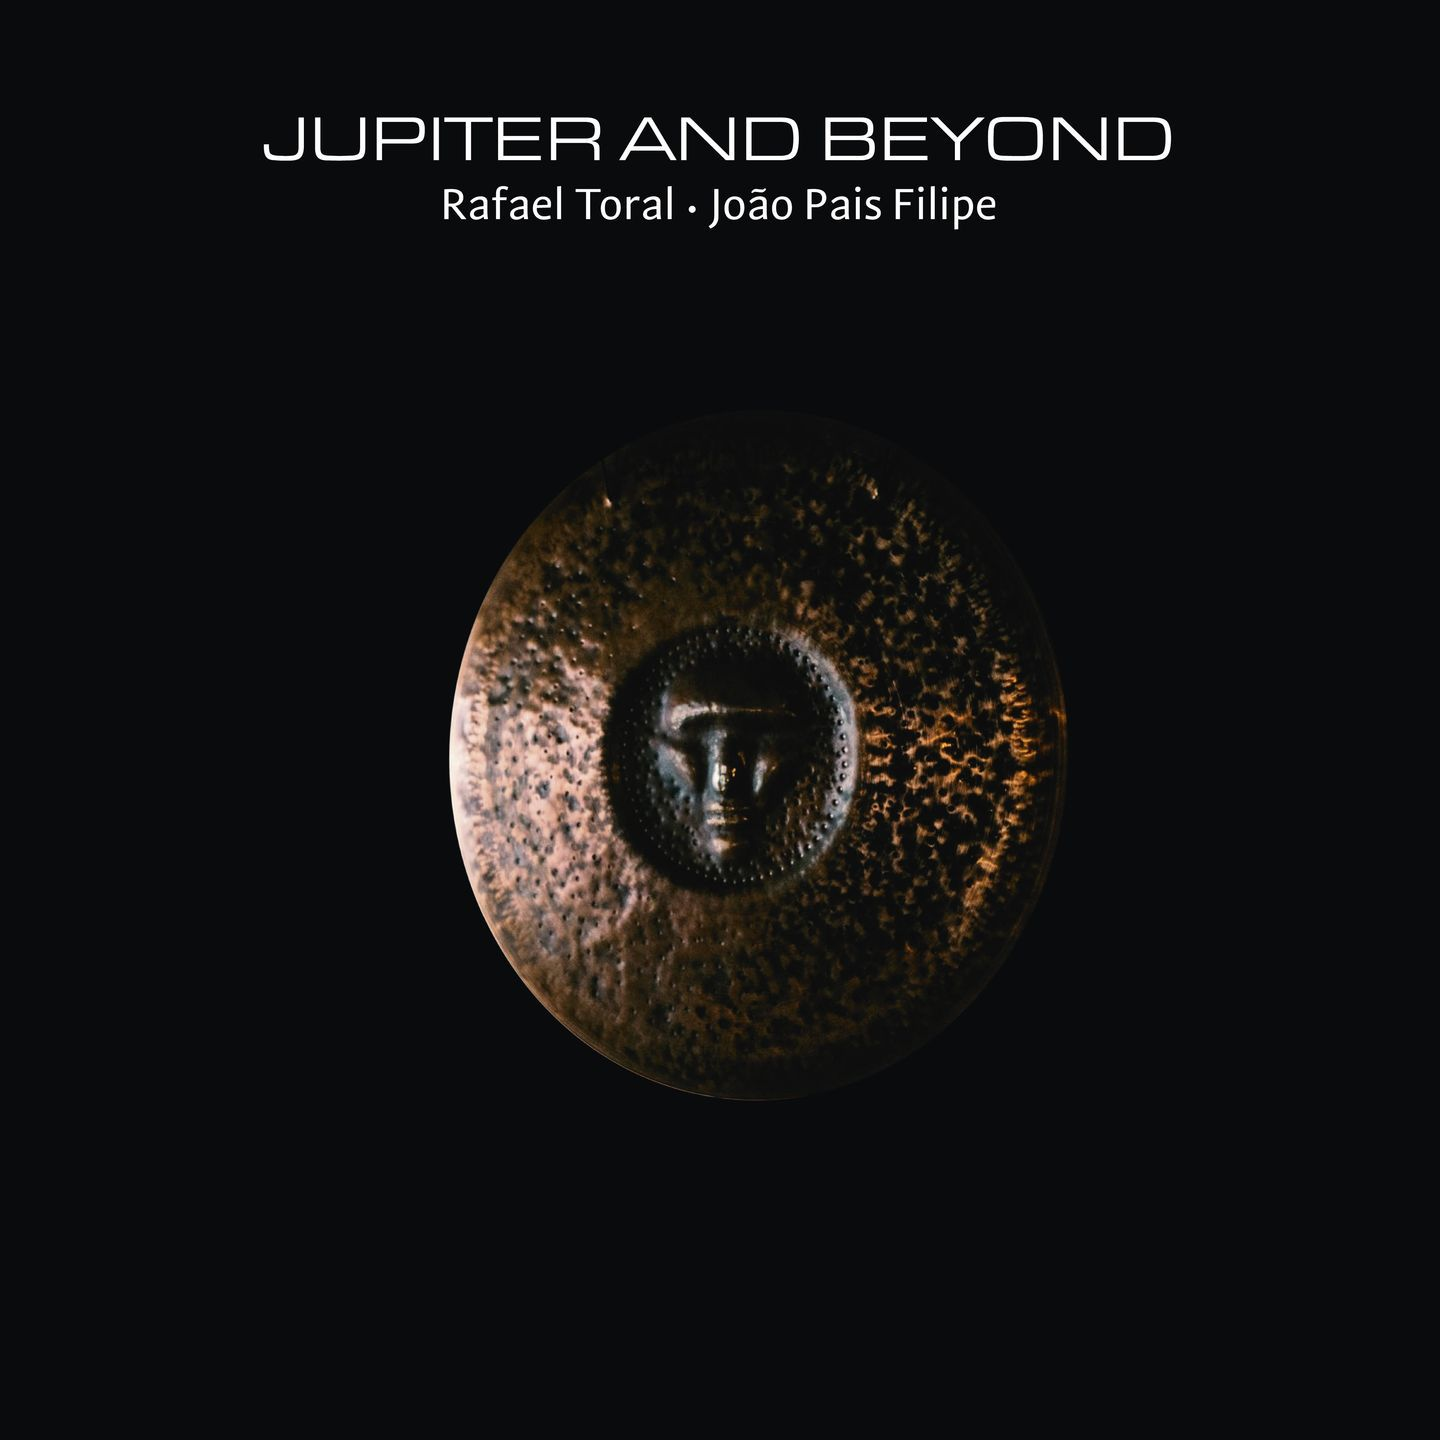 Rafael Toral & João Pais Filipe - Jupiter and Beyond